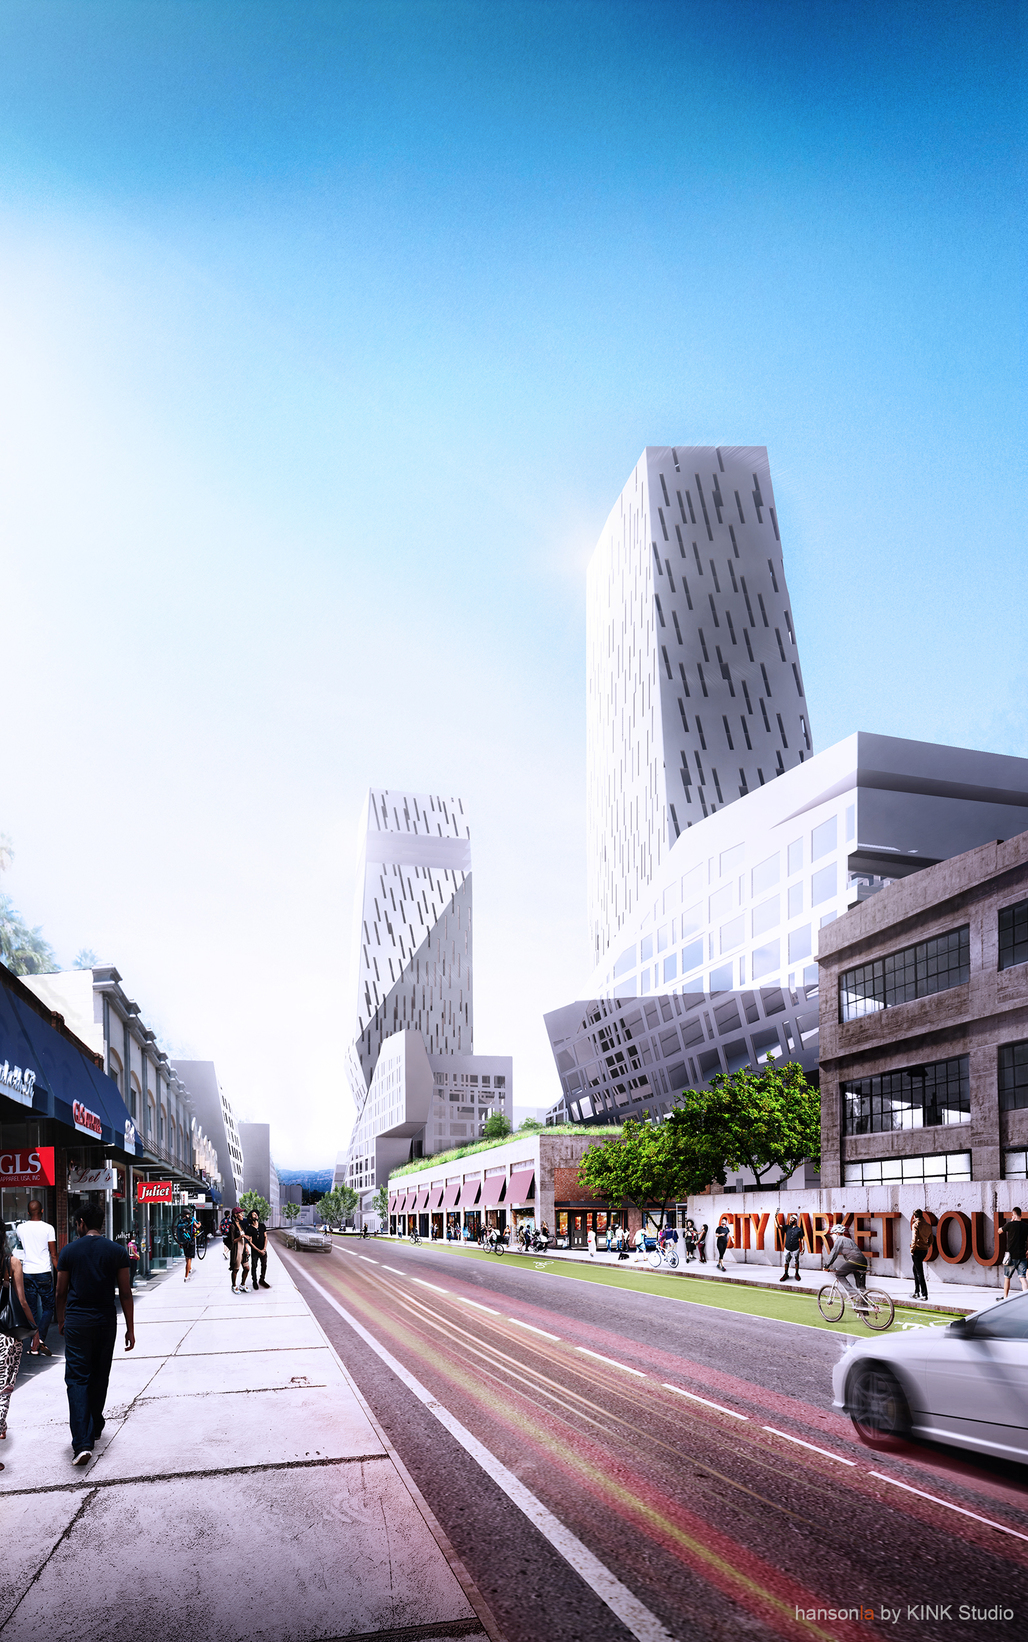 City Market Los Angeles redevelopment by HansonLA. Rendering by KINK Studio.